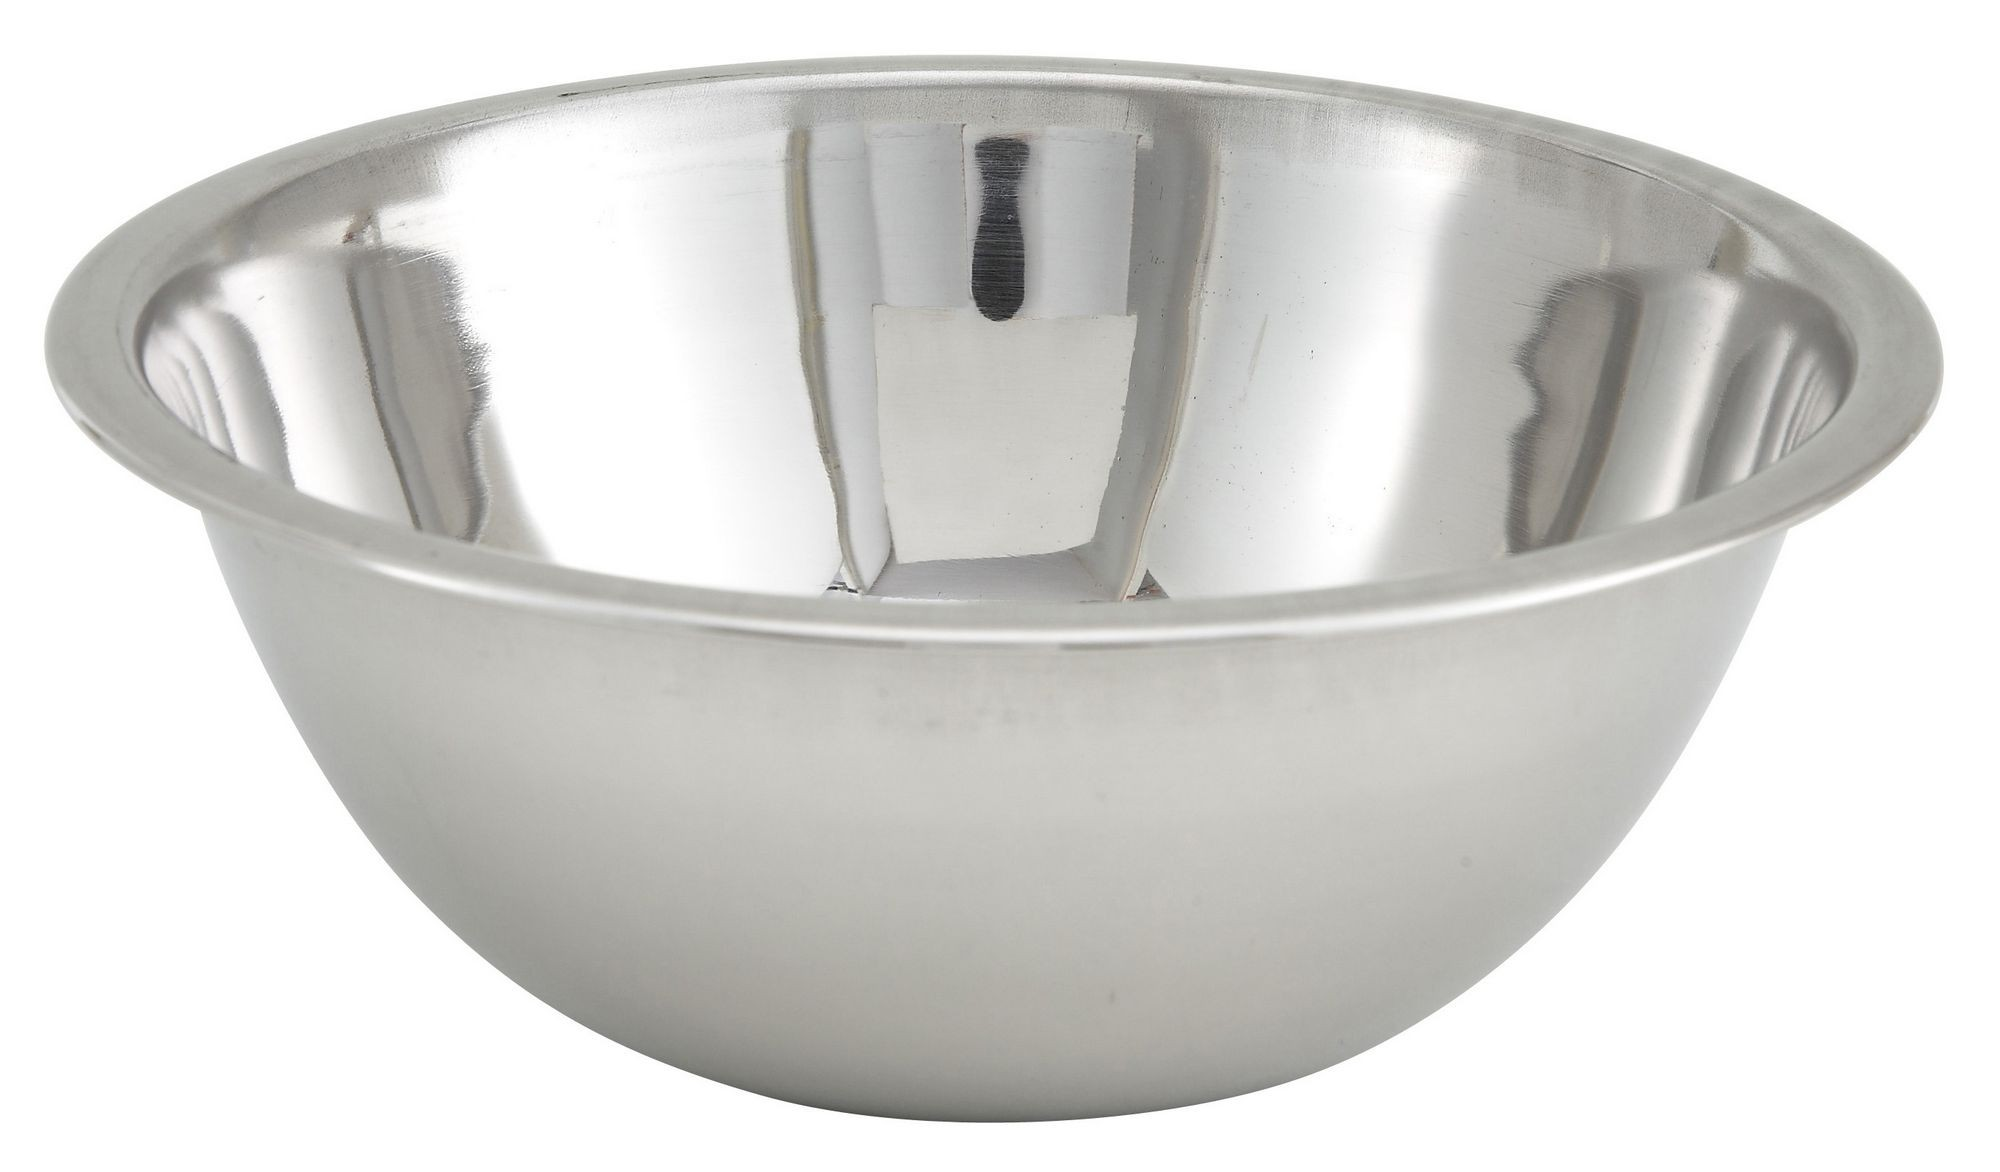 Winco MXBT-150Q Stainless Steel All-Purpose Mixing Bowl 1.5 Qt.